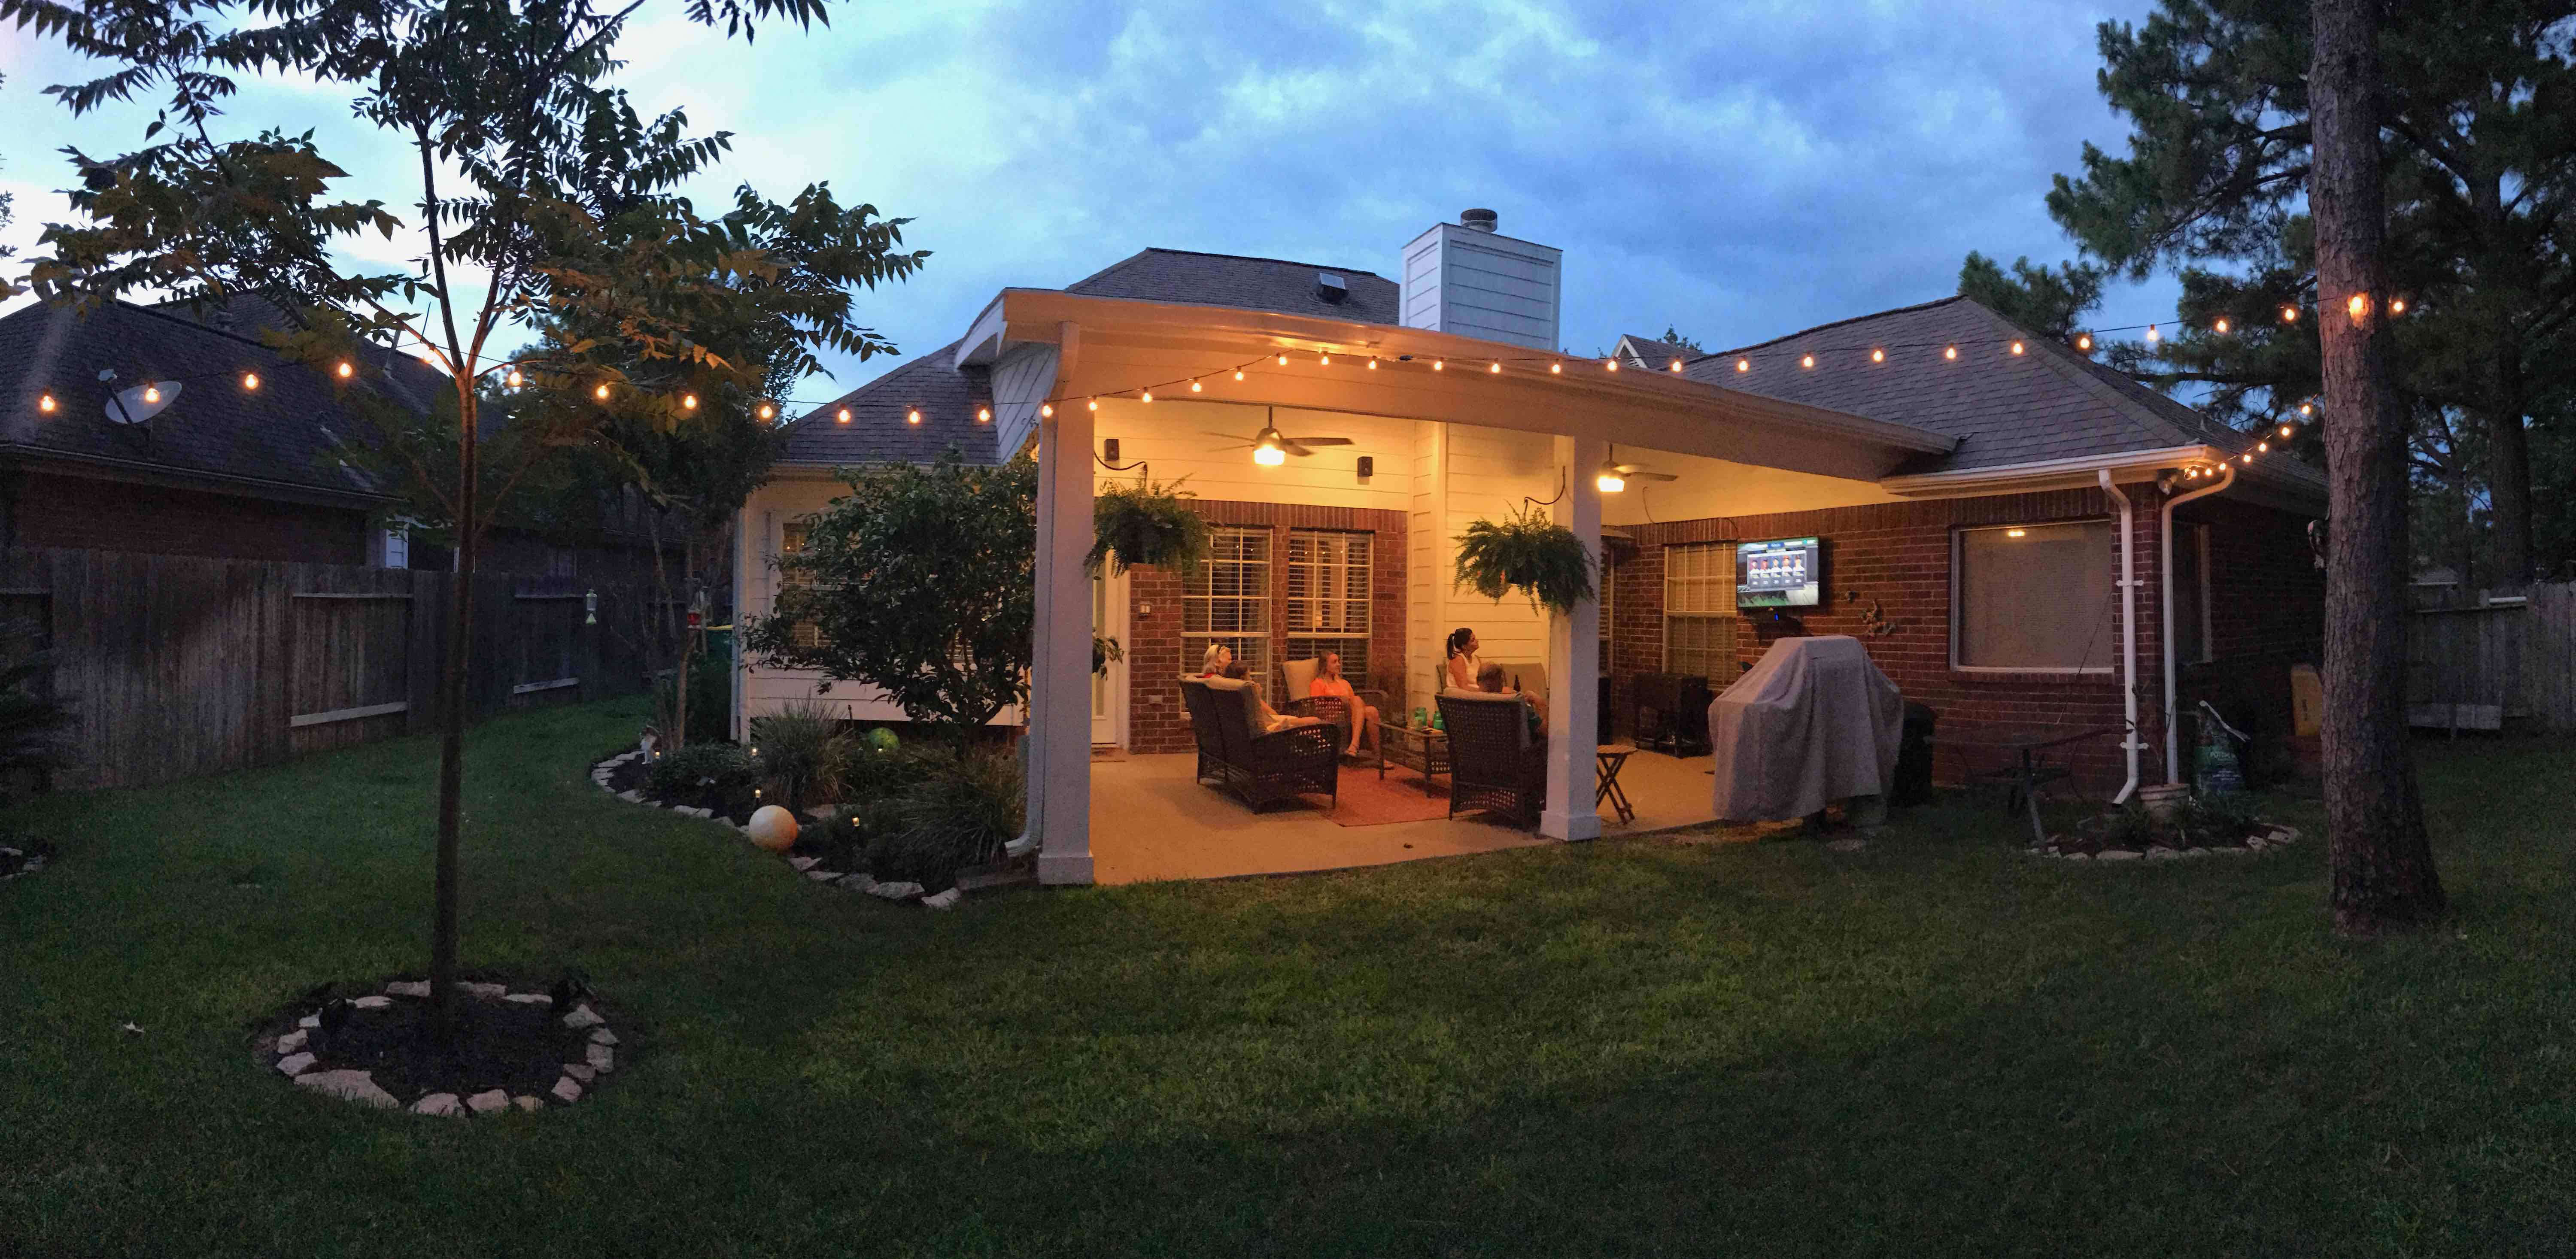 Custom Patio Covers in Katy TX – Affordable Shade Patio Covers